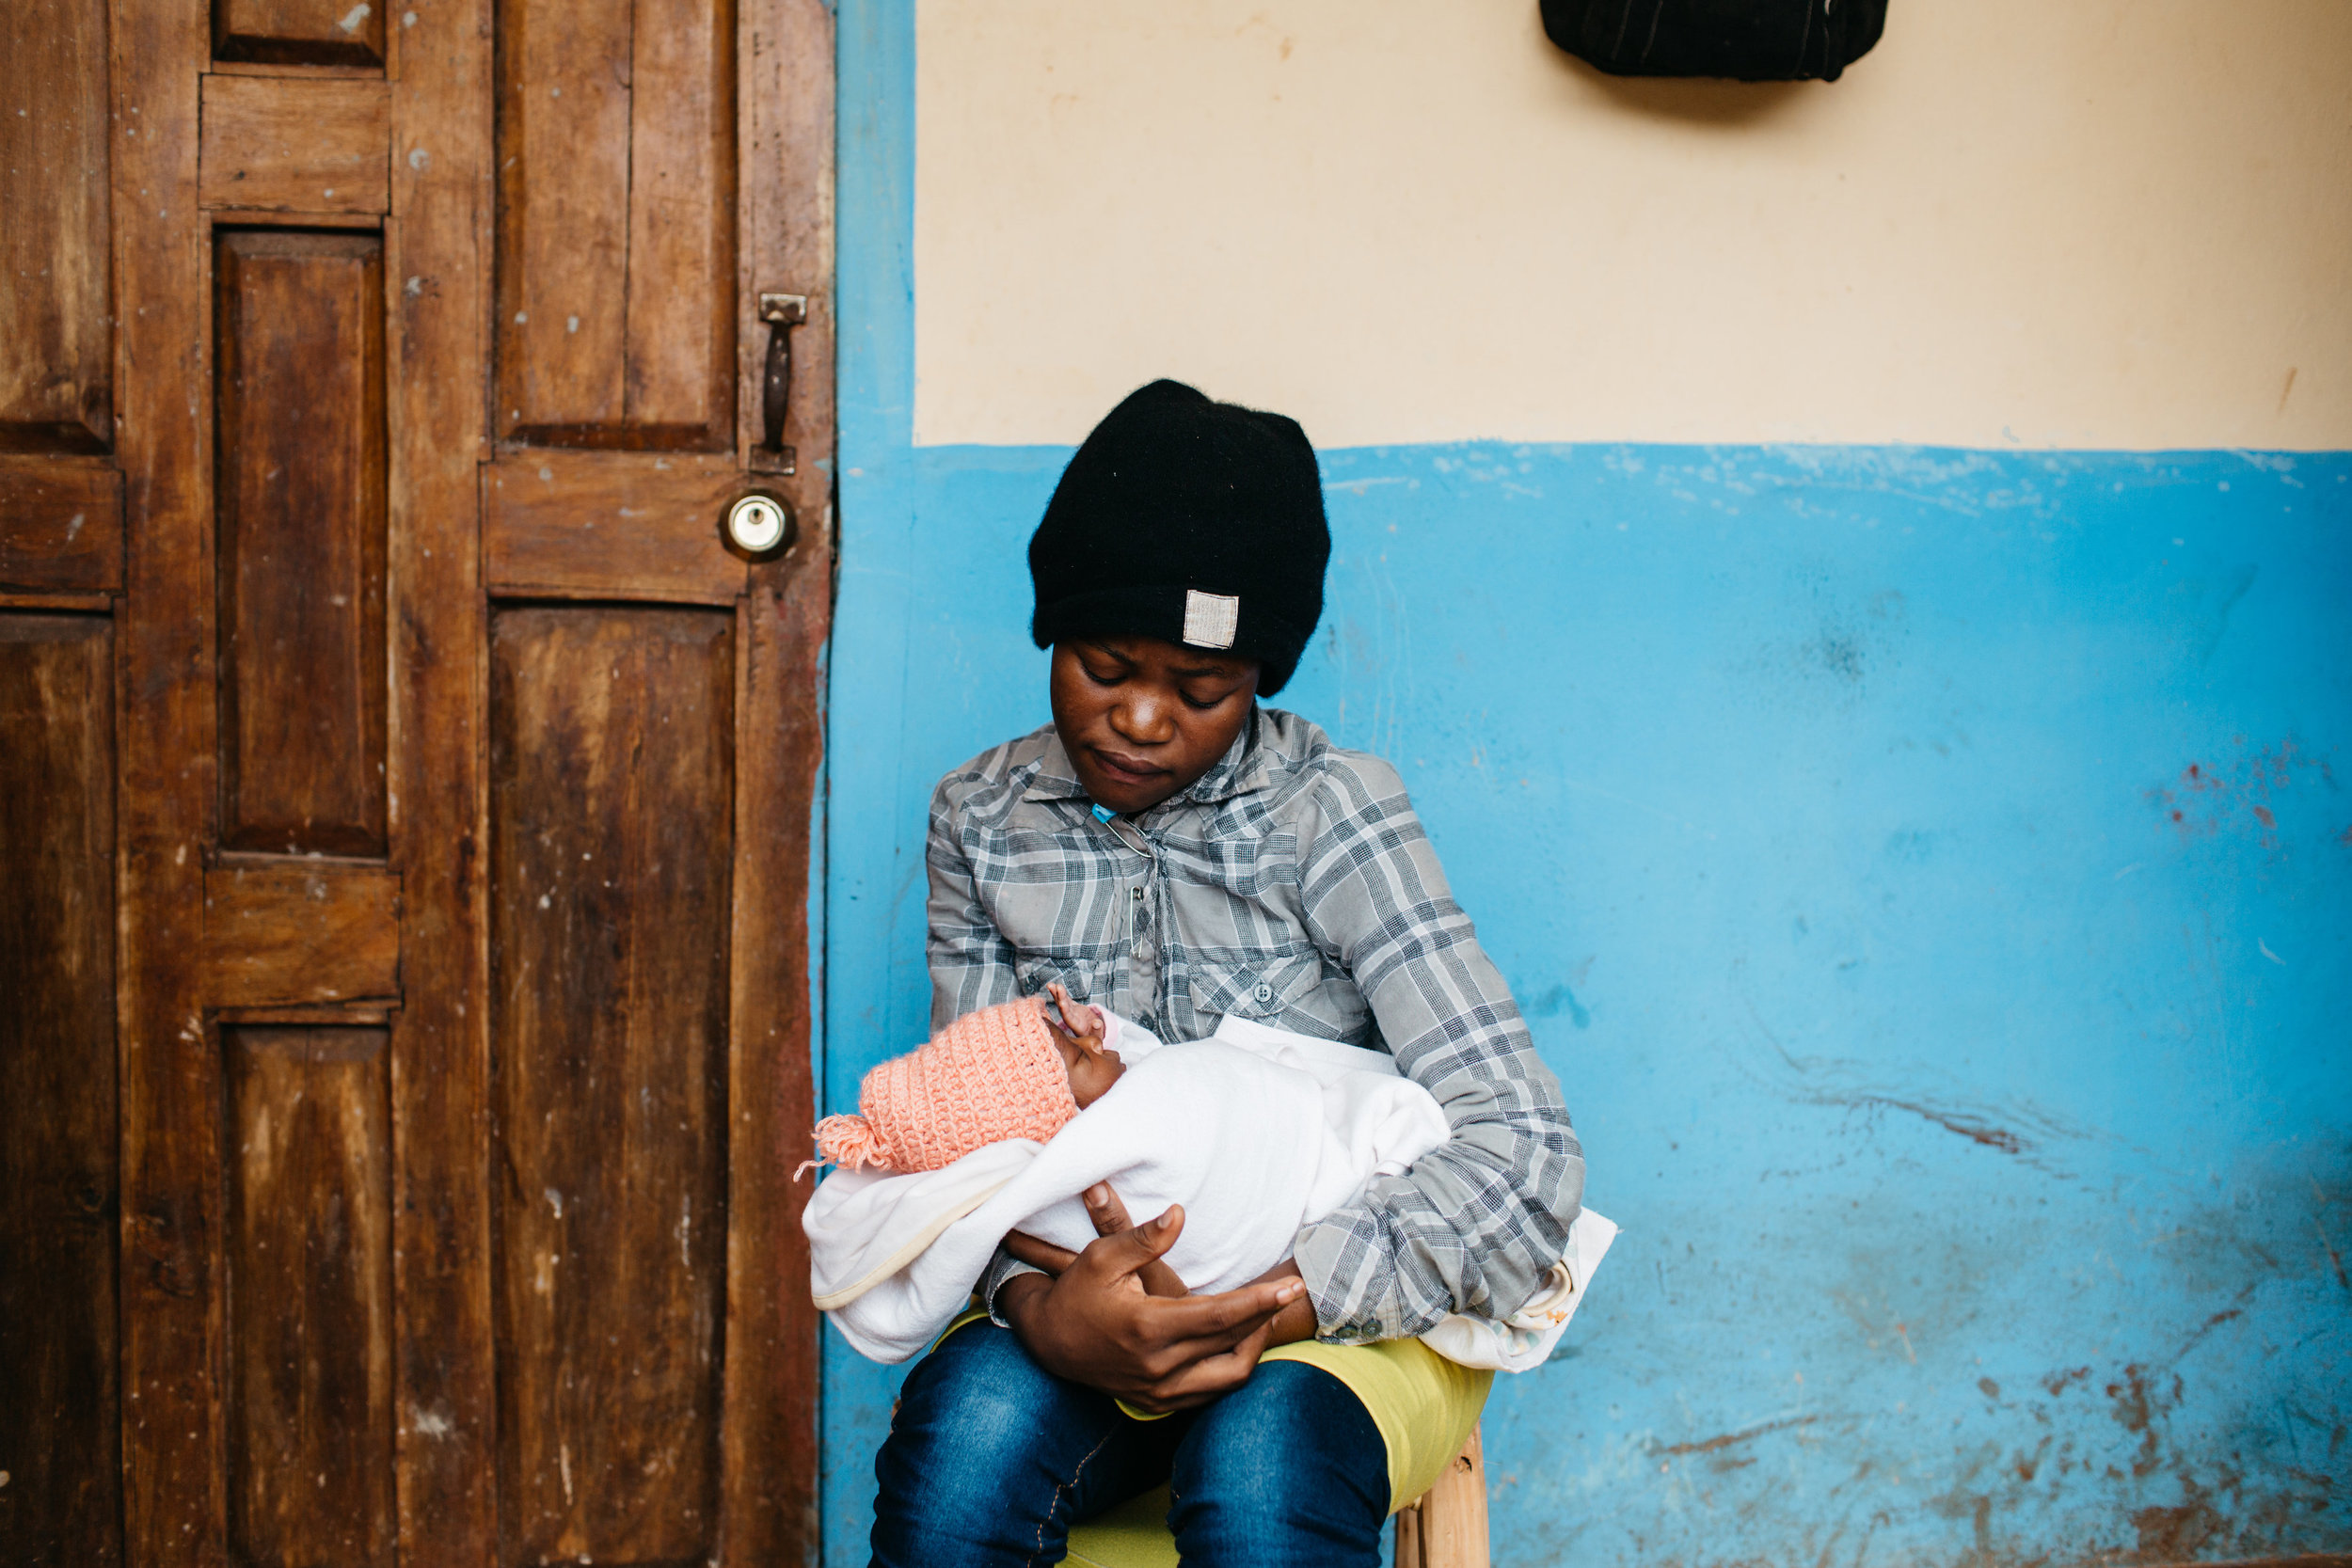 Breastfeeding Support - We advocate for breastfeeding as the best prevention of malnutrition. We provide hands-on support and education to help mothers and babies get the strong start they deserve on their breastfeeding journey.